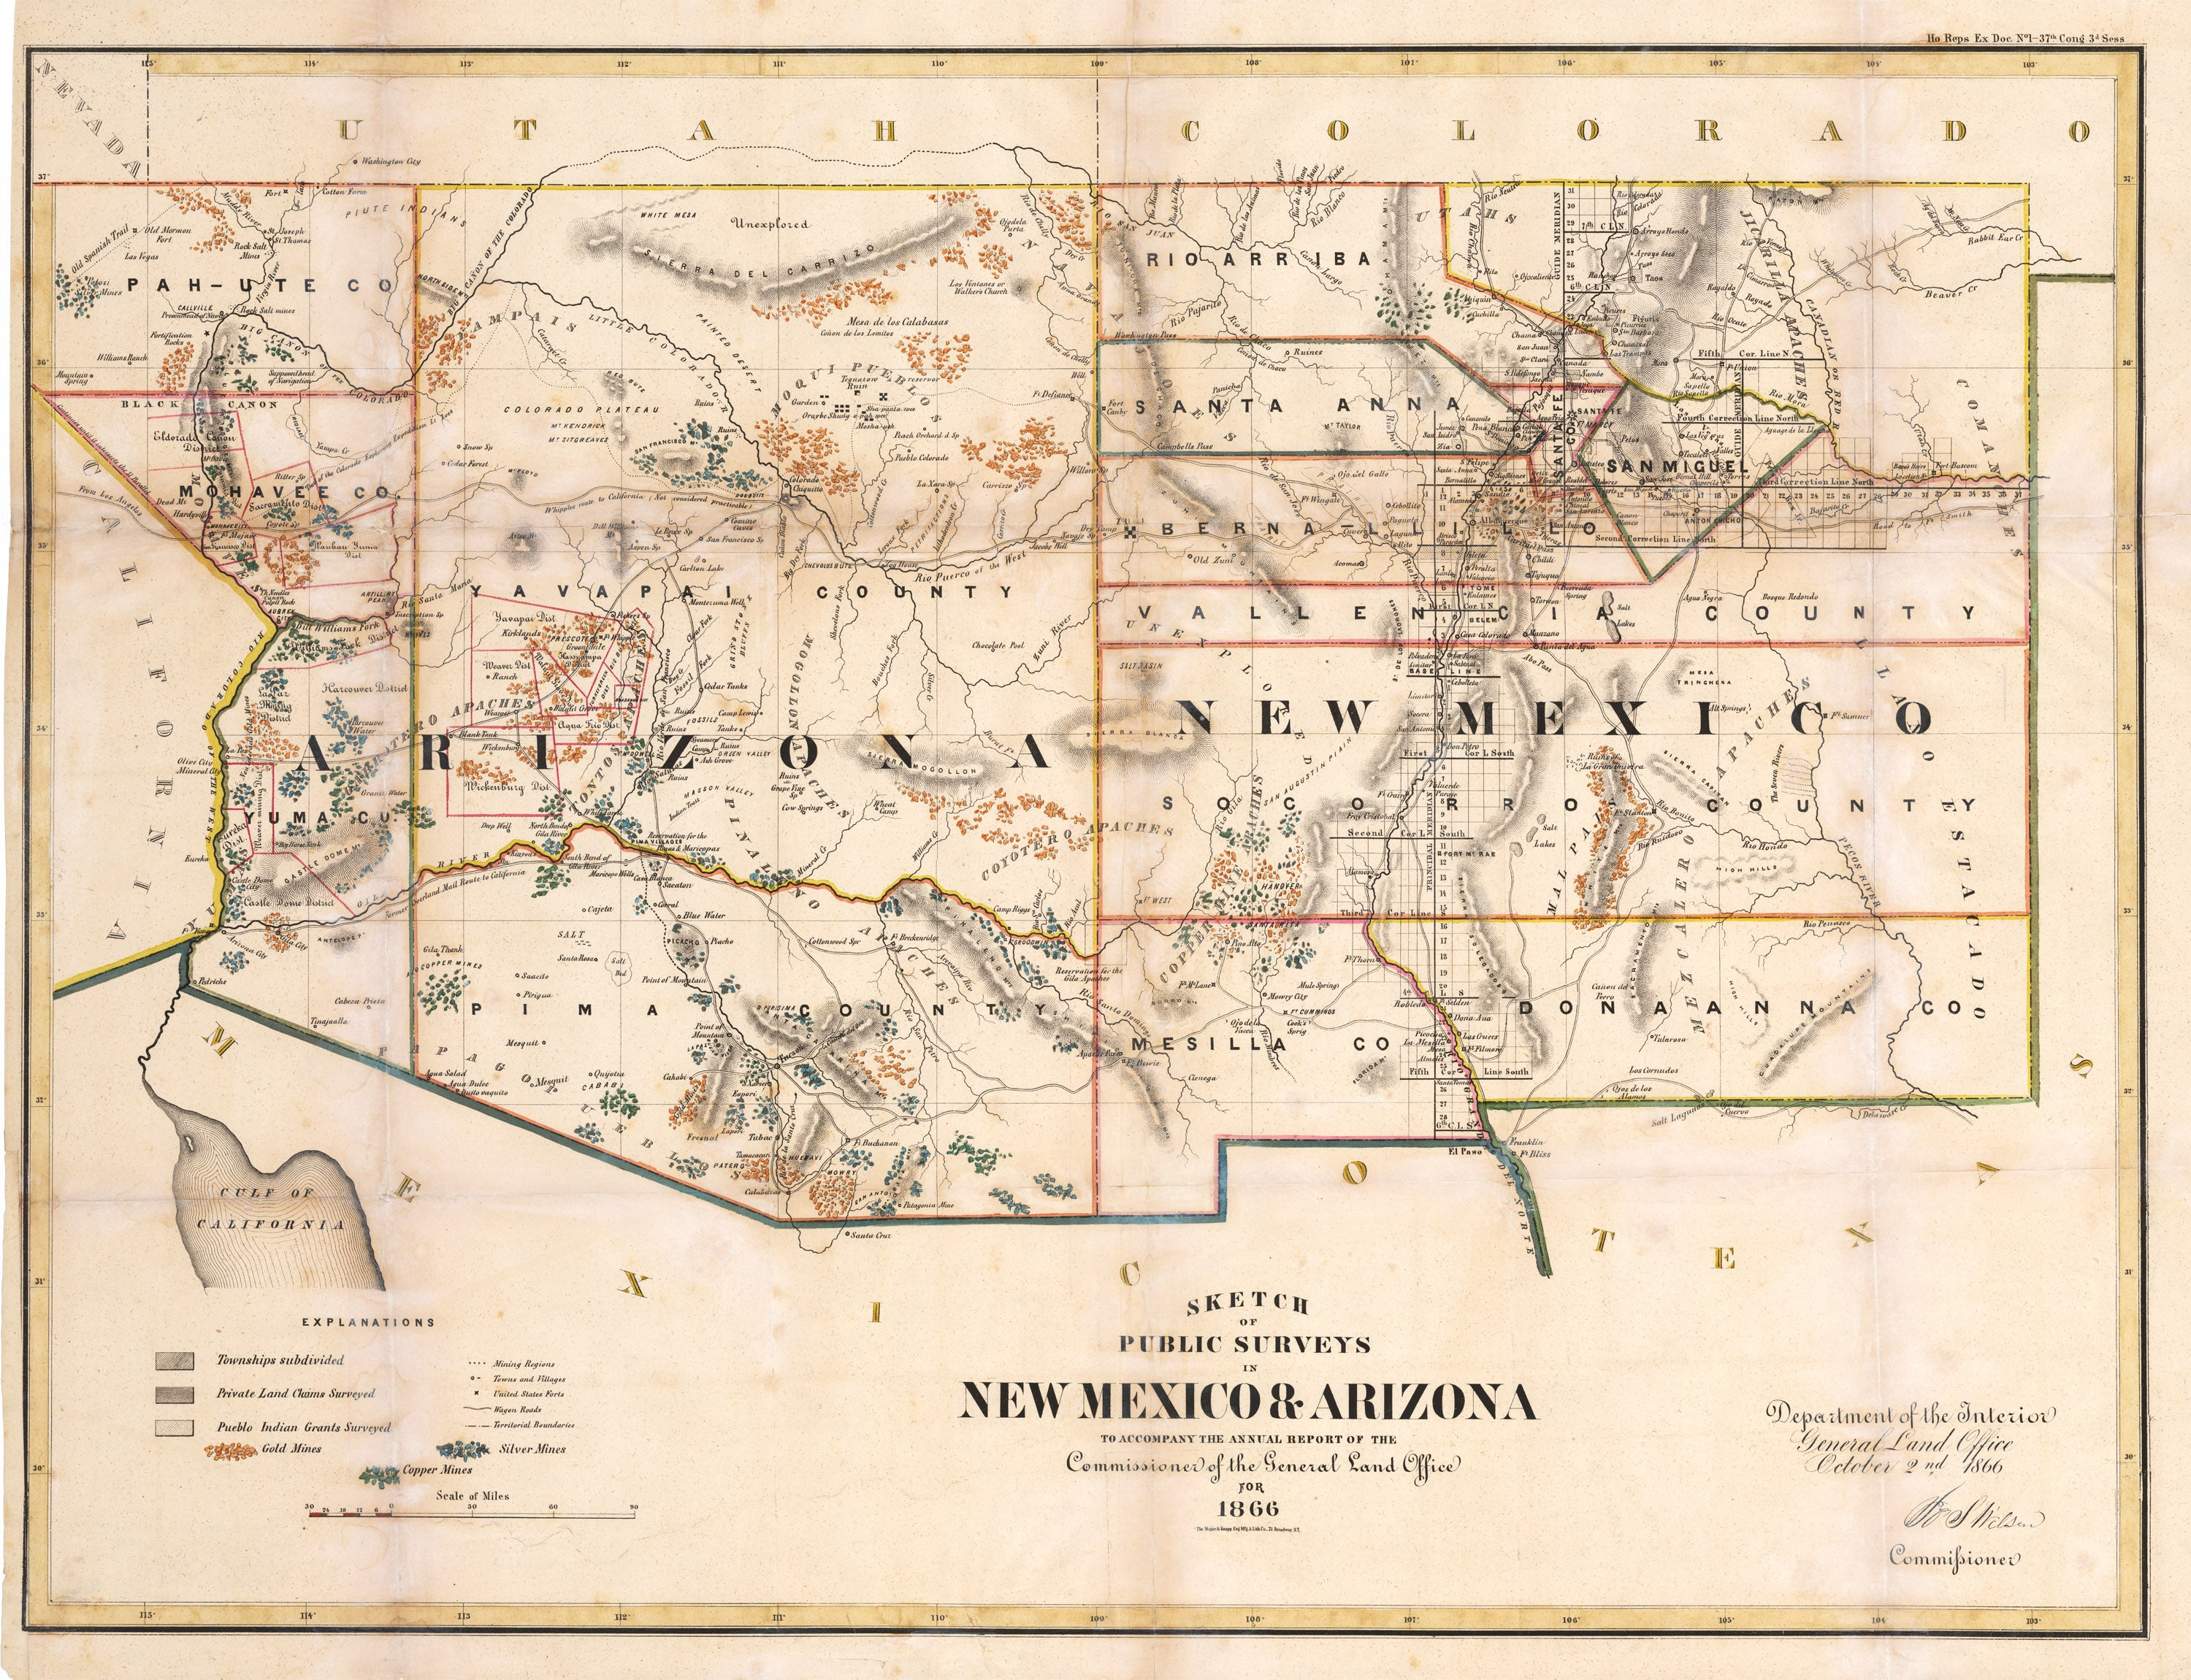 1866 Sketch of Public Surveys in New Mexico & Arizona to accompany the  annual report of the Comission of the General Land Office for 1866